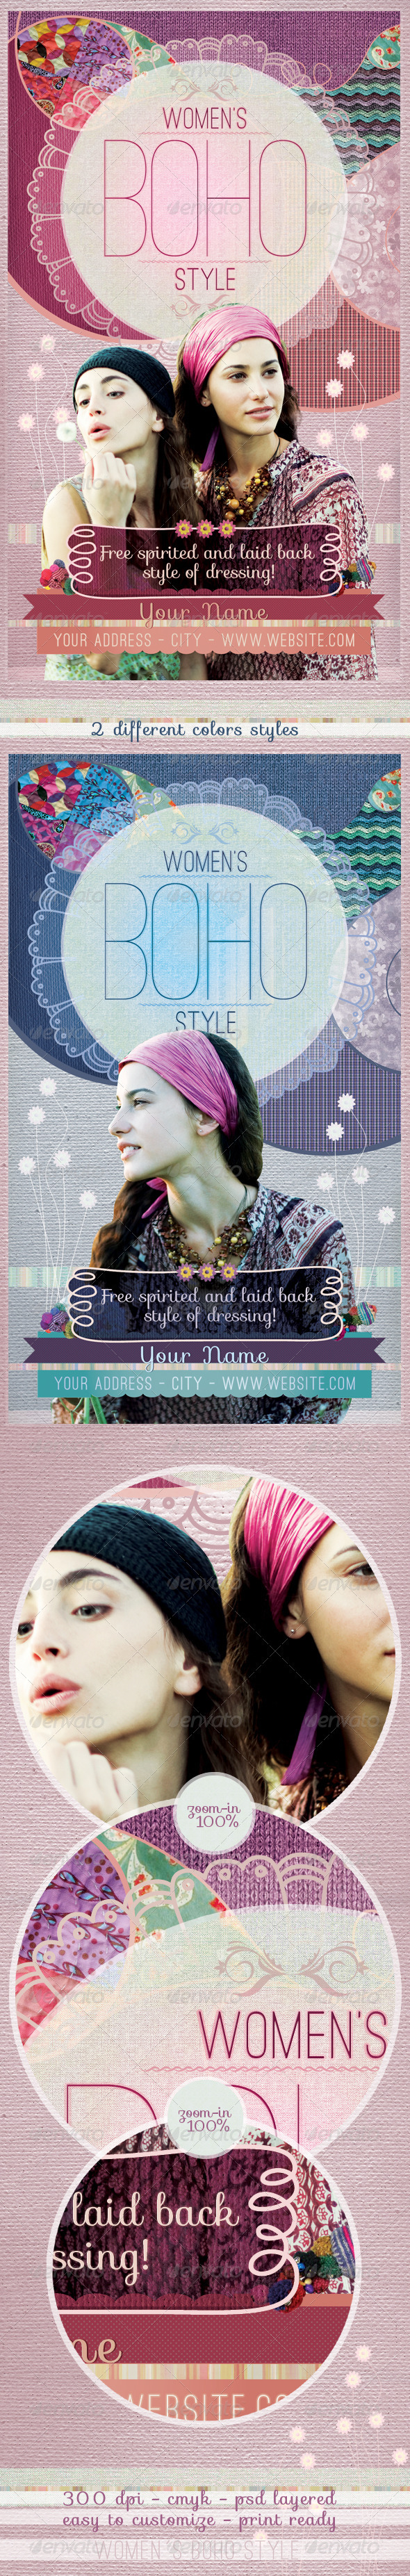 Women´s Boho Style Flyer Template - Clubs & Parties Events